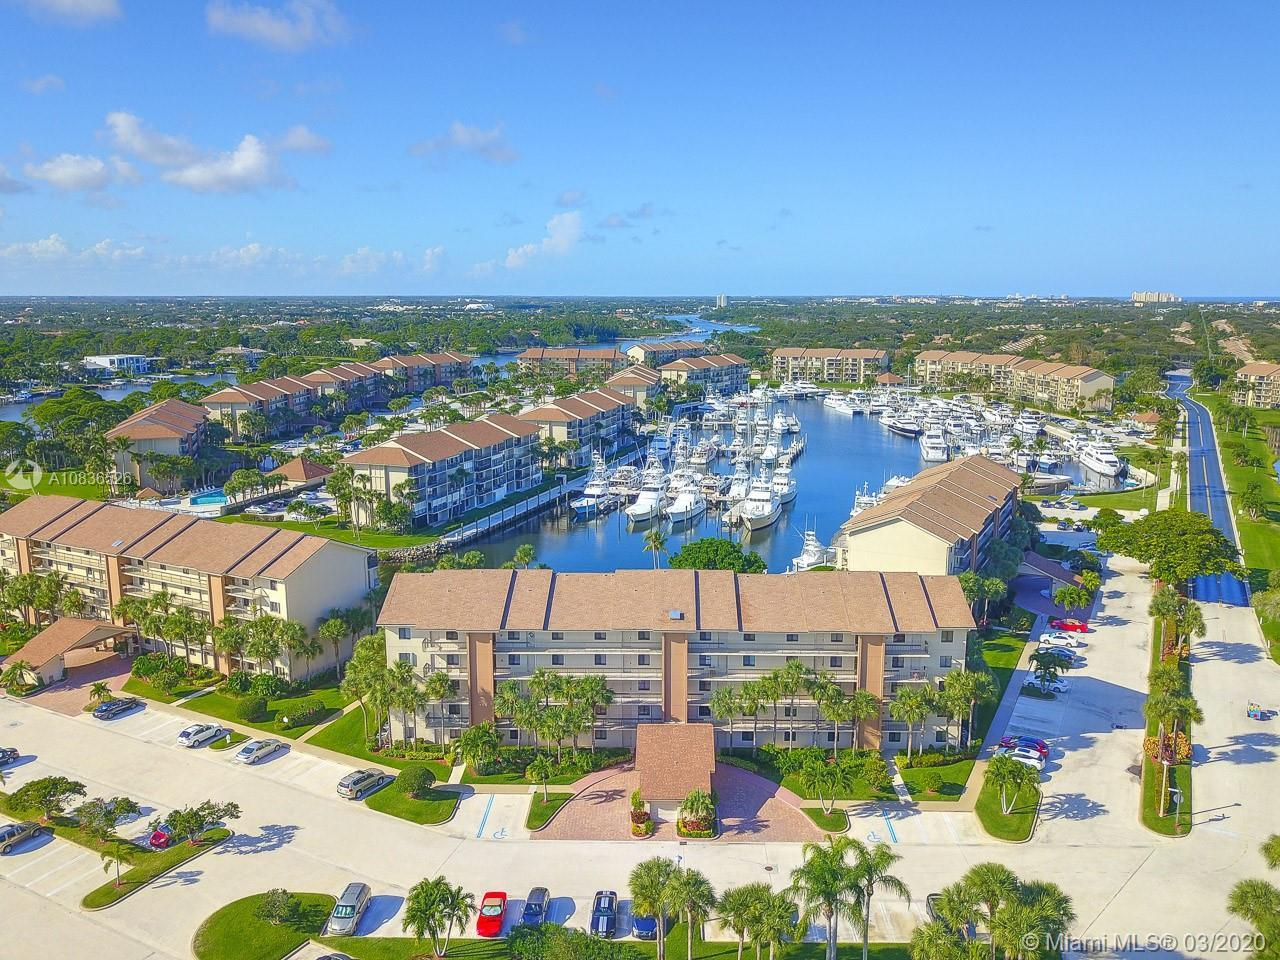 Two bedroom/two bath Marina Condo overlooking the pool with views of the Marina. Original owner, nev